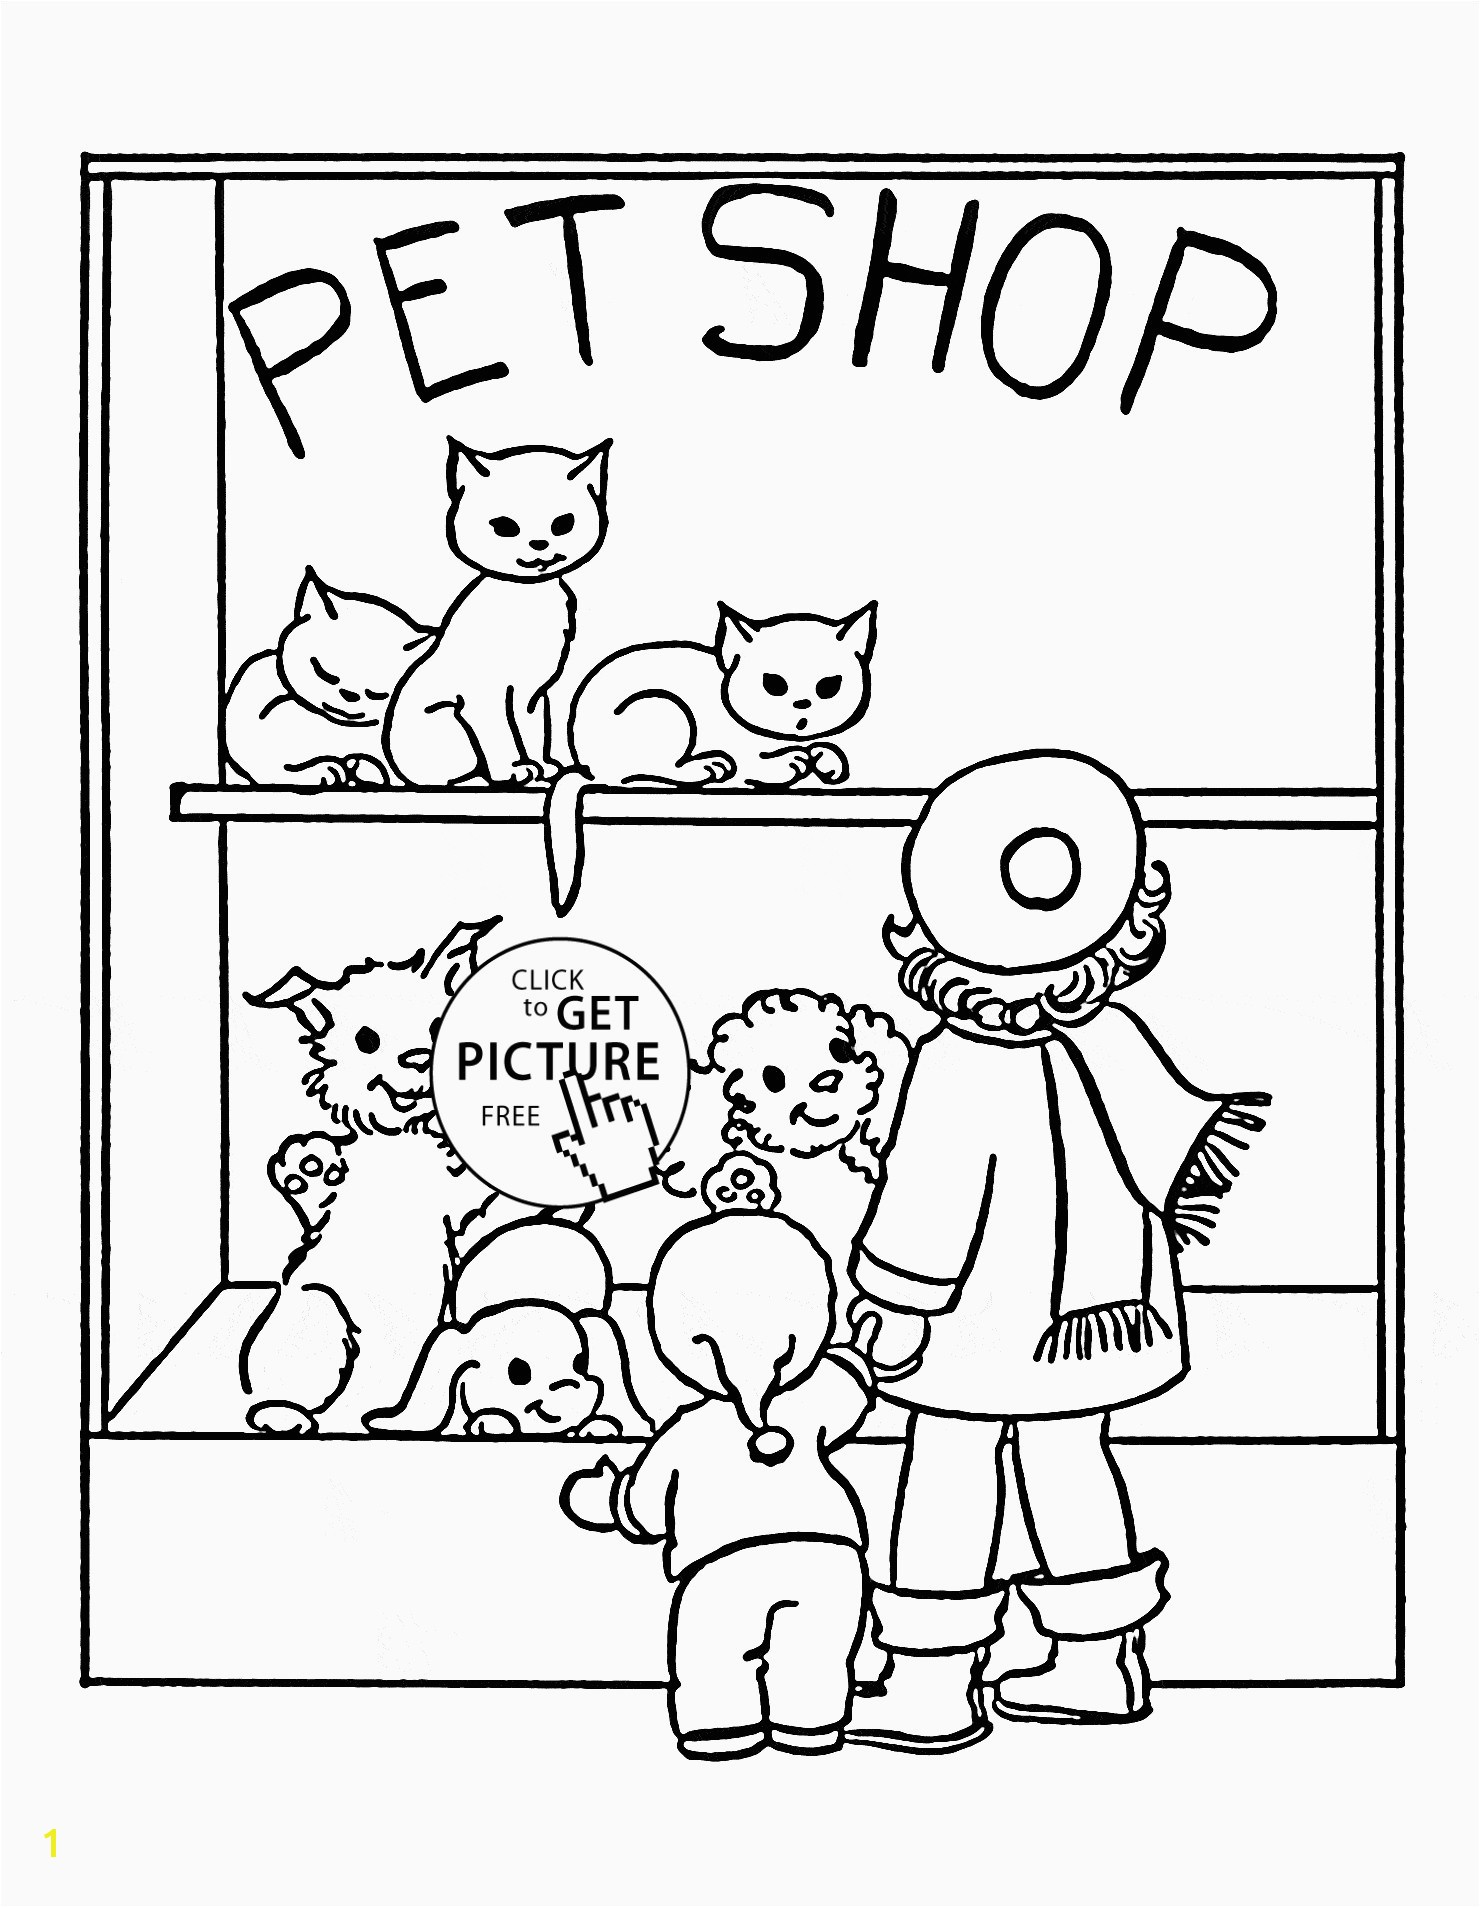 Free Downloadable Coloring Pages From Disney Fresh Letter O Coloring Pages Luxury Best Od Dog Coloring